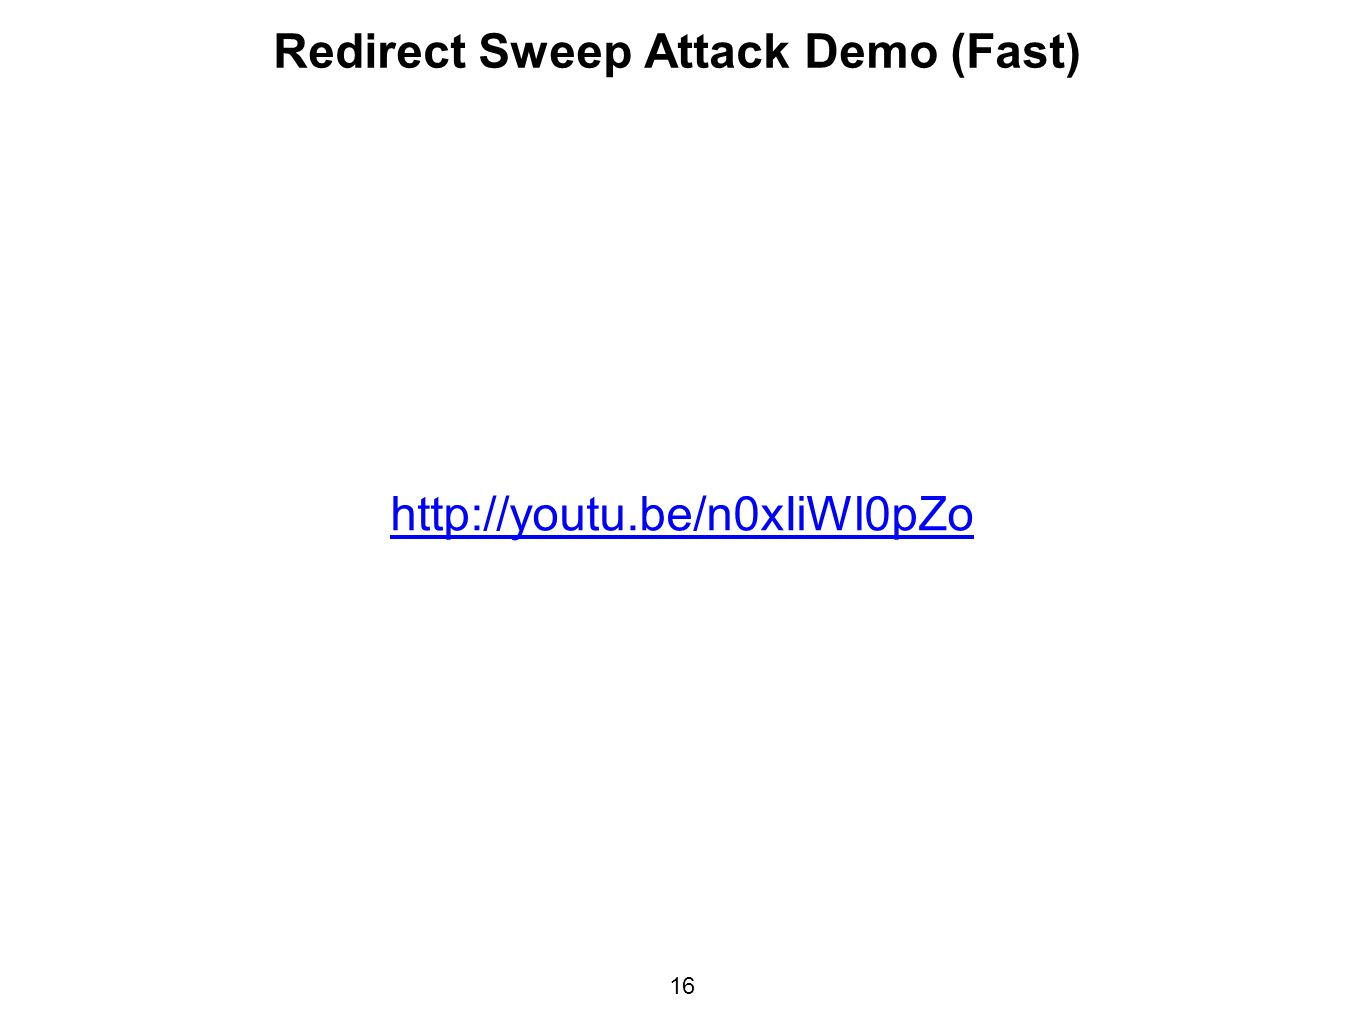 16 Redirect Sweep Attack Demo (Fast) http://youtu.be/n0xIiWl0pZo